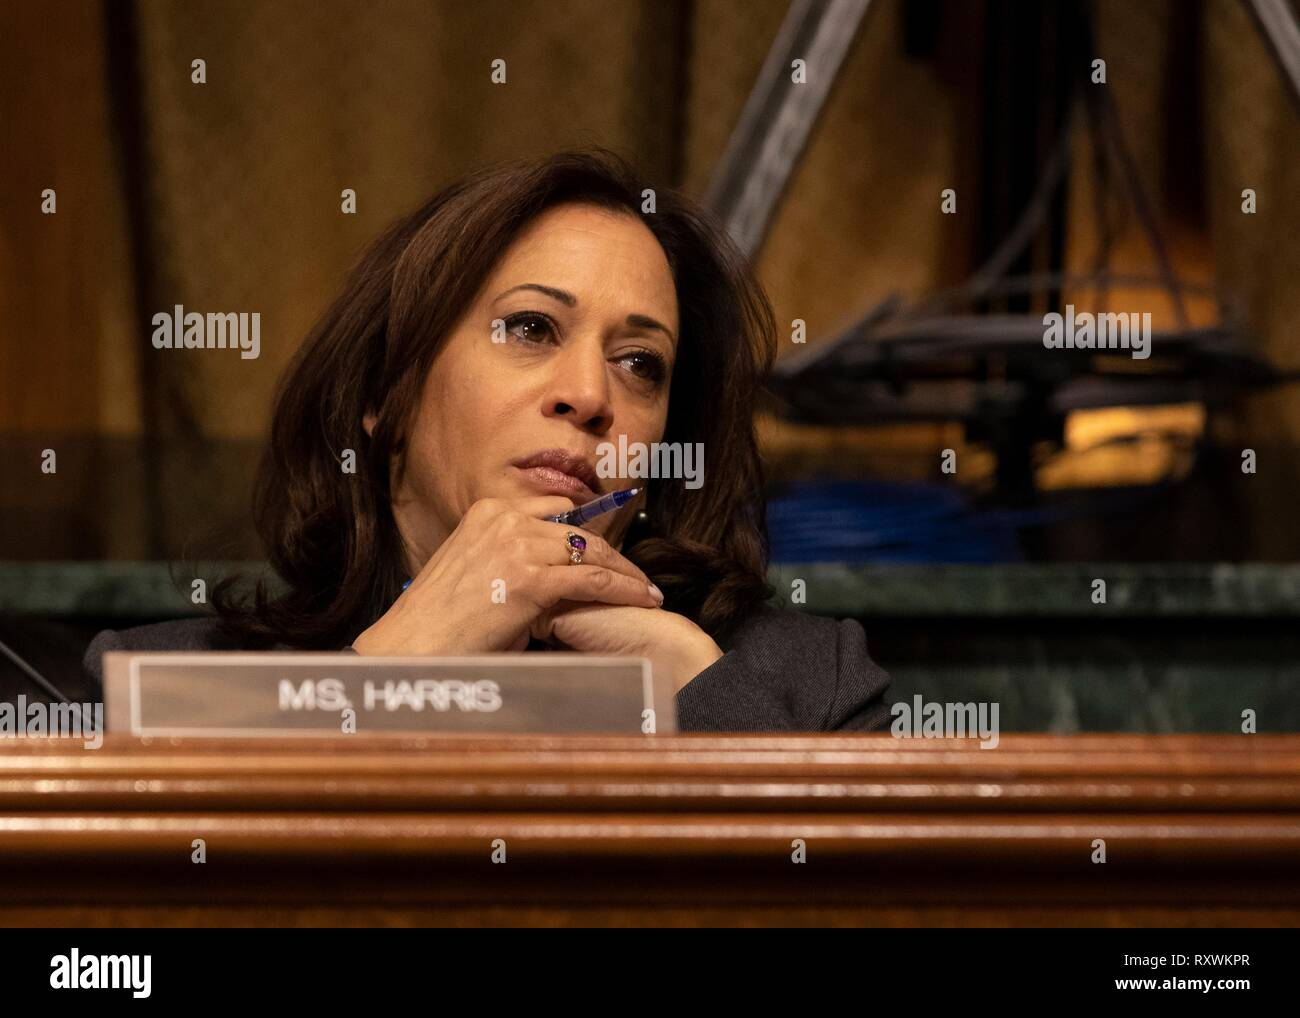 U.S. Senator Kamala Harris of California, questions Customs and Border Protection Commissioner Kevin McAleenan during a hearing at the Senate Judiciary Committee on Capitol Hill March 5, 2019 in Washington, D.C. The hearing was on the Oversight of Customs and Border Protection Response to the Smuggling of Persons at the Southern Border. - Stock Image